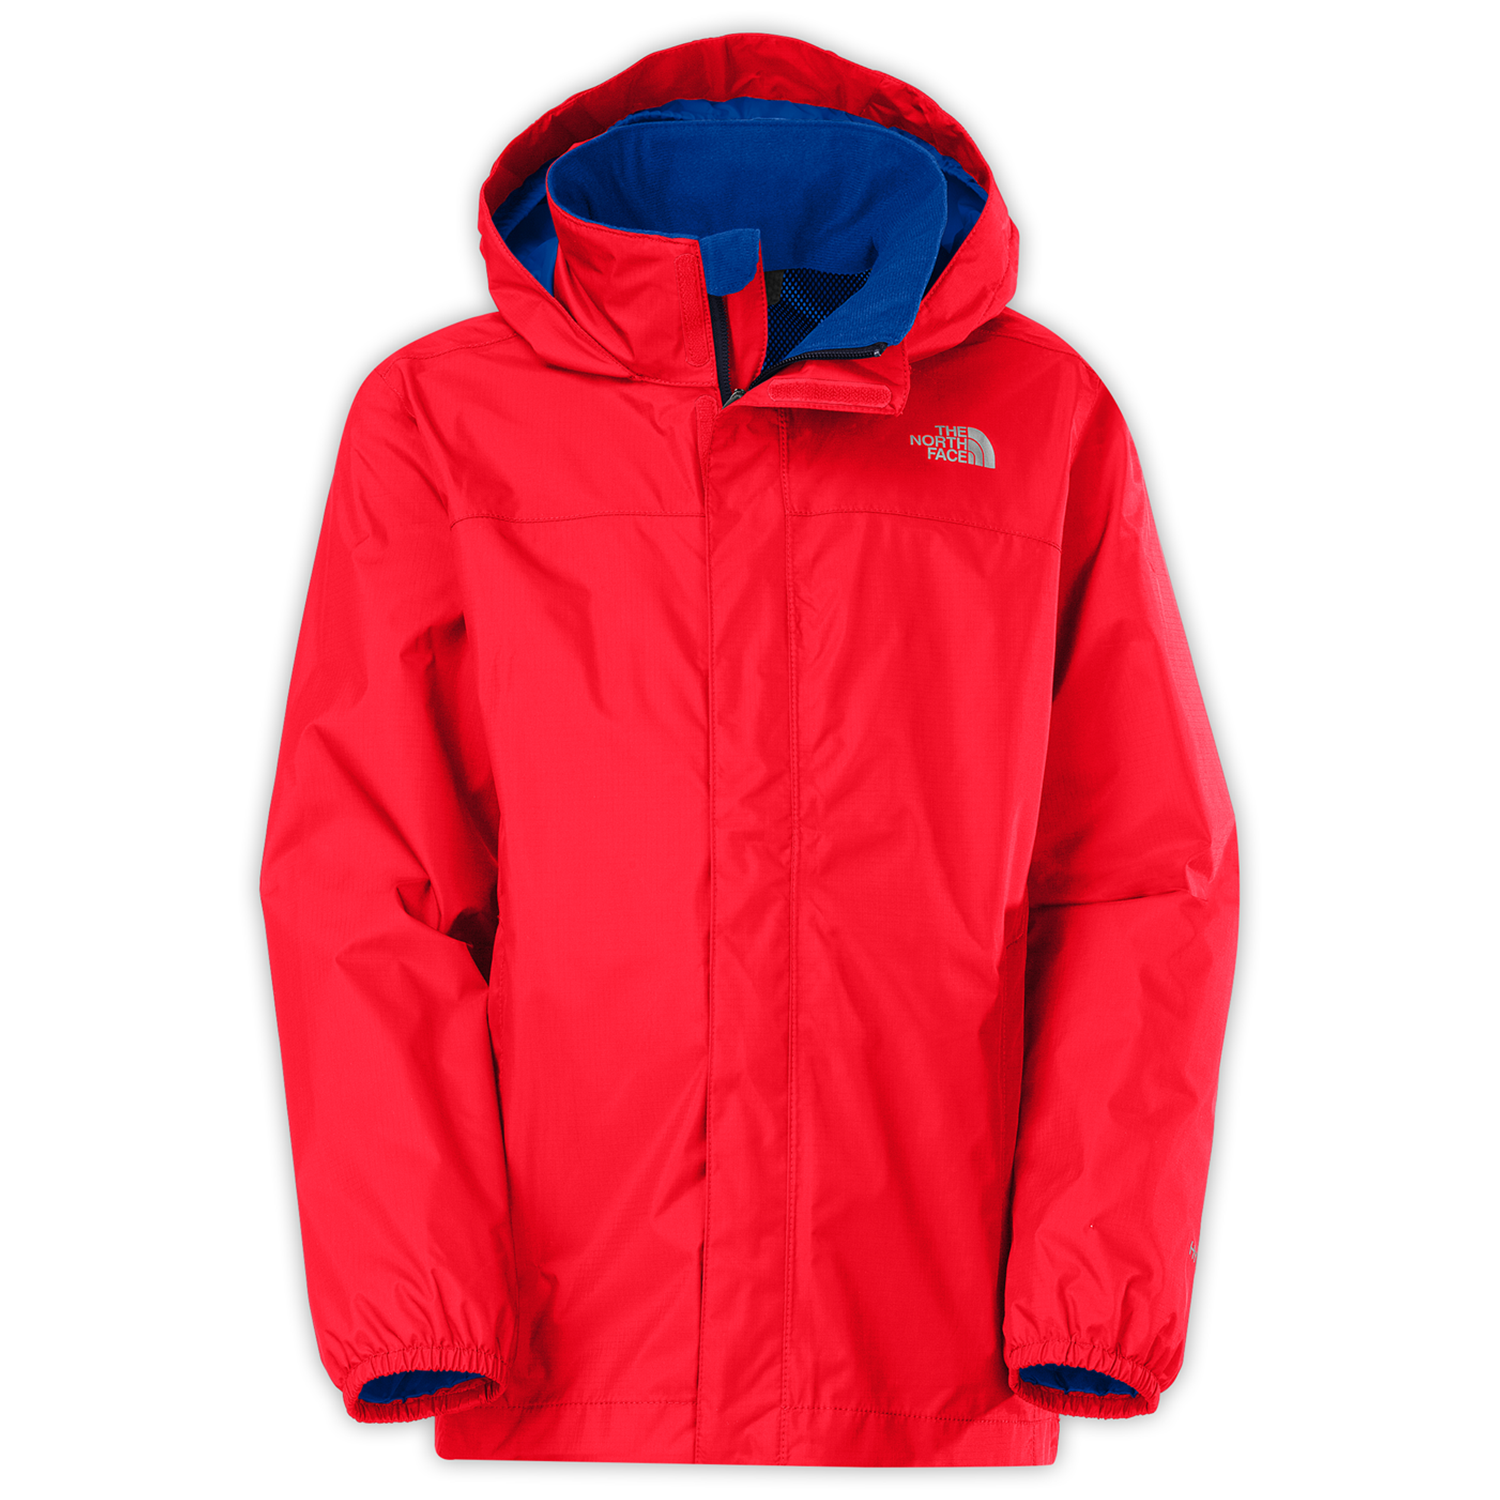 The North Face Resolve Reflective Jacket Boy's